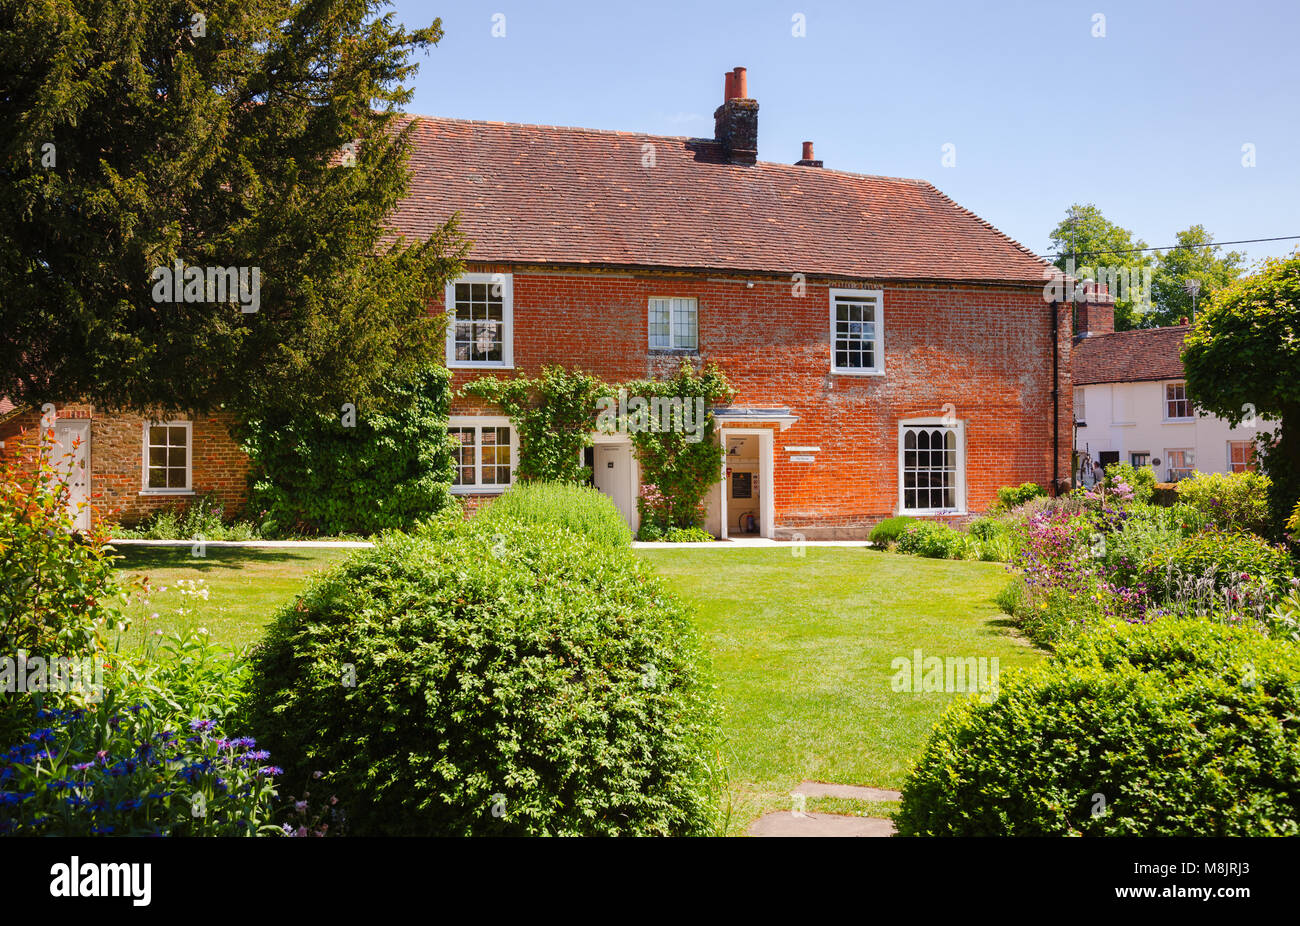 CHAWTON, UK - JUN 8, 2013: Green lawn at formal garden of Chawton Cottage, an independent museum of novelist Jane - Stock Image